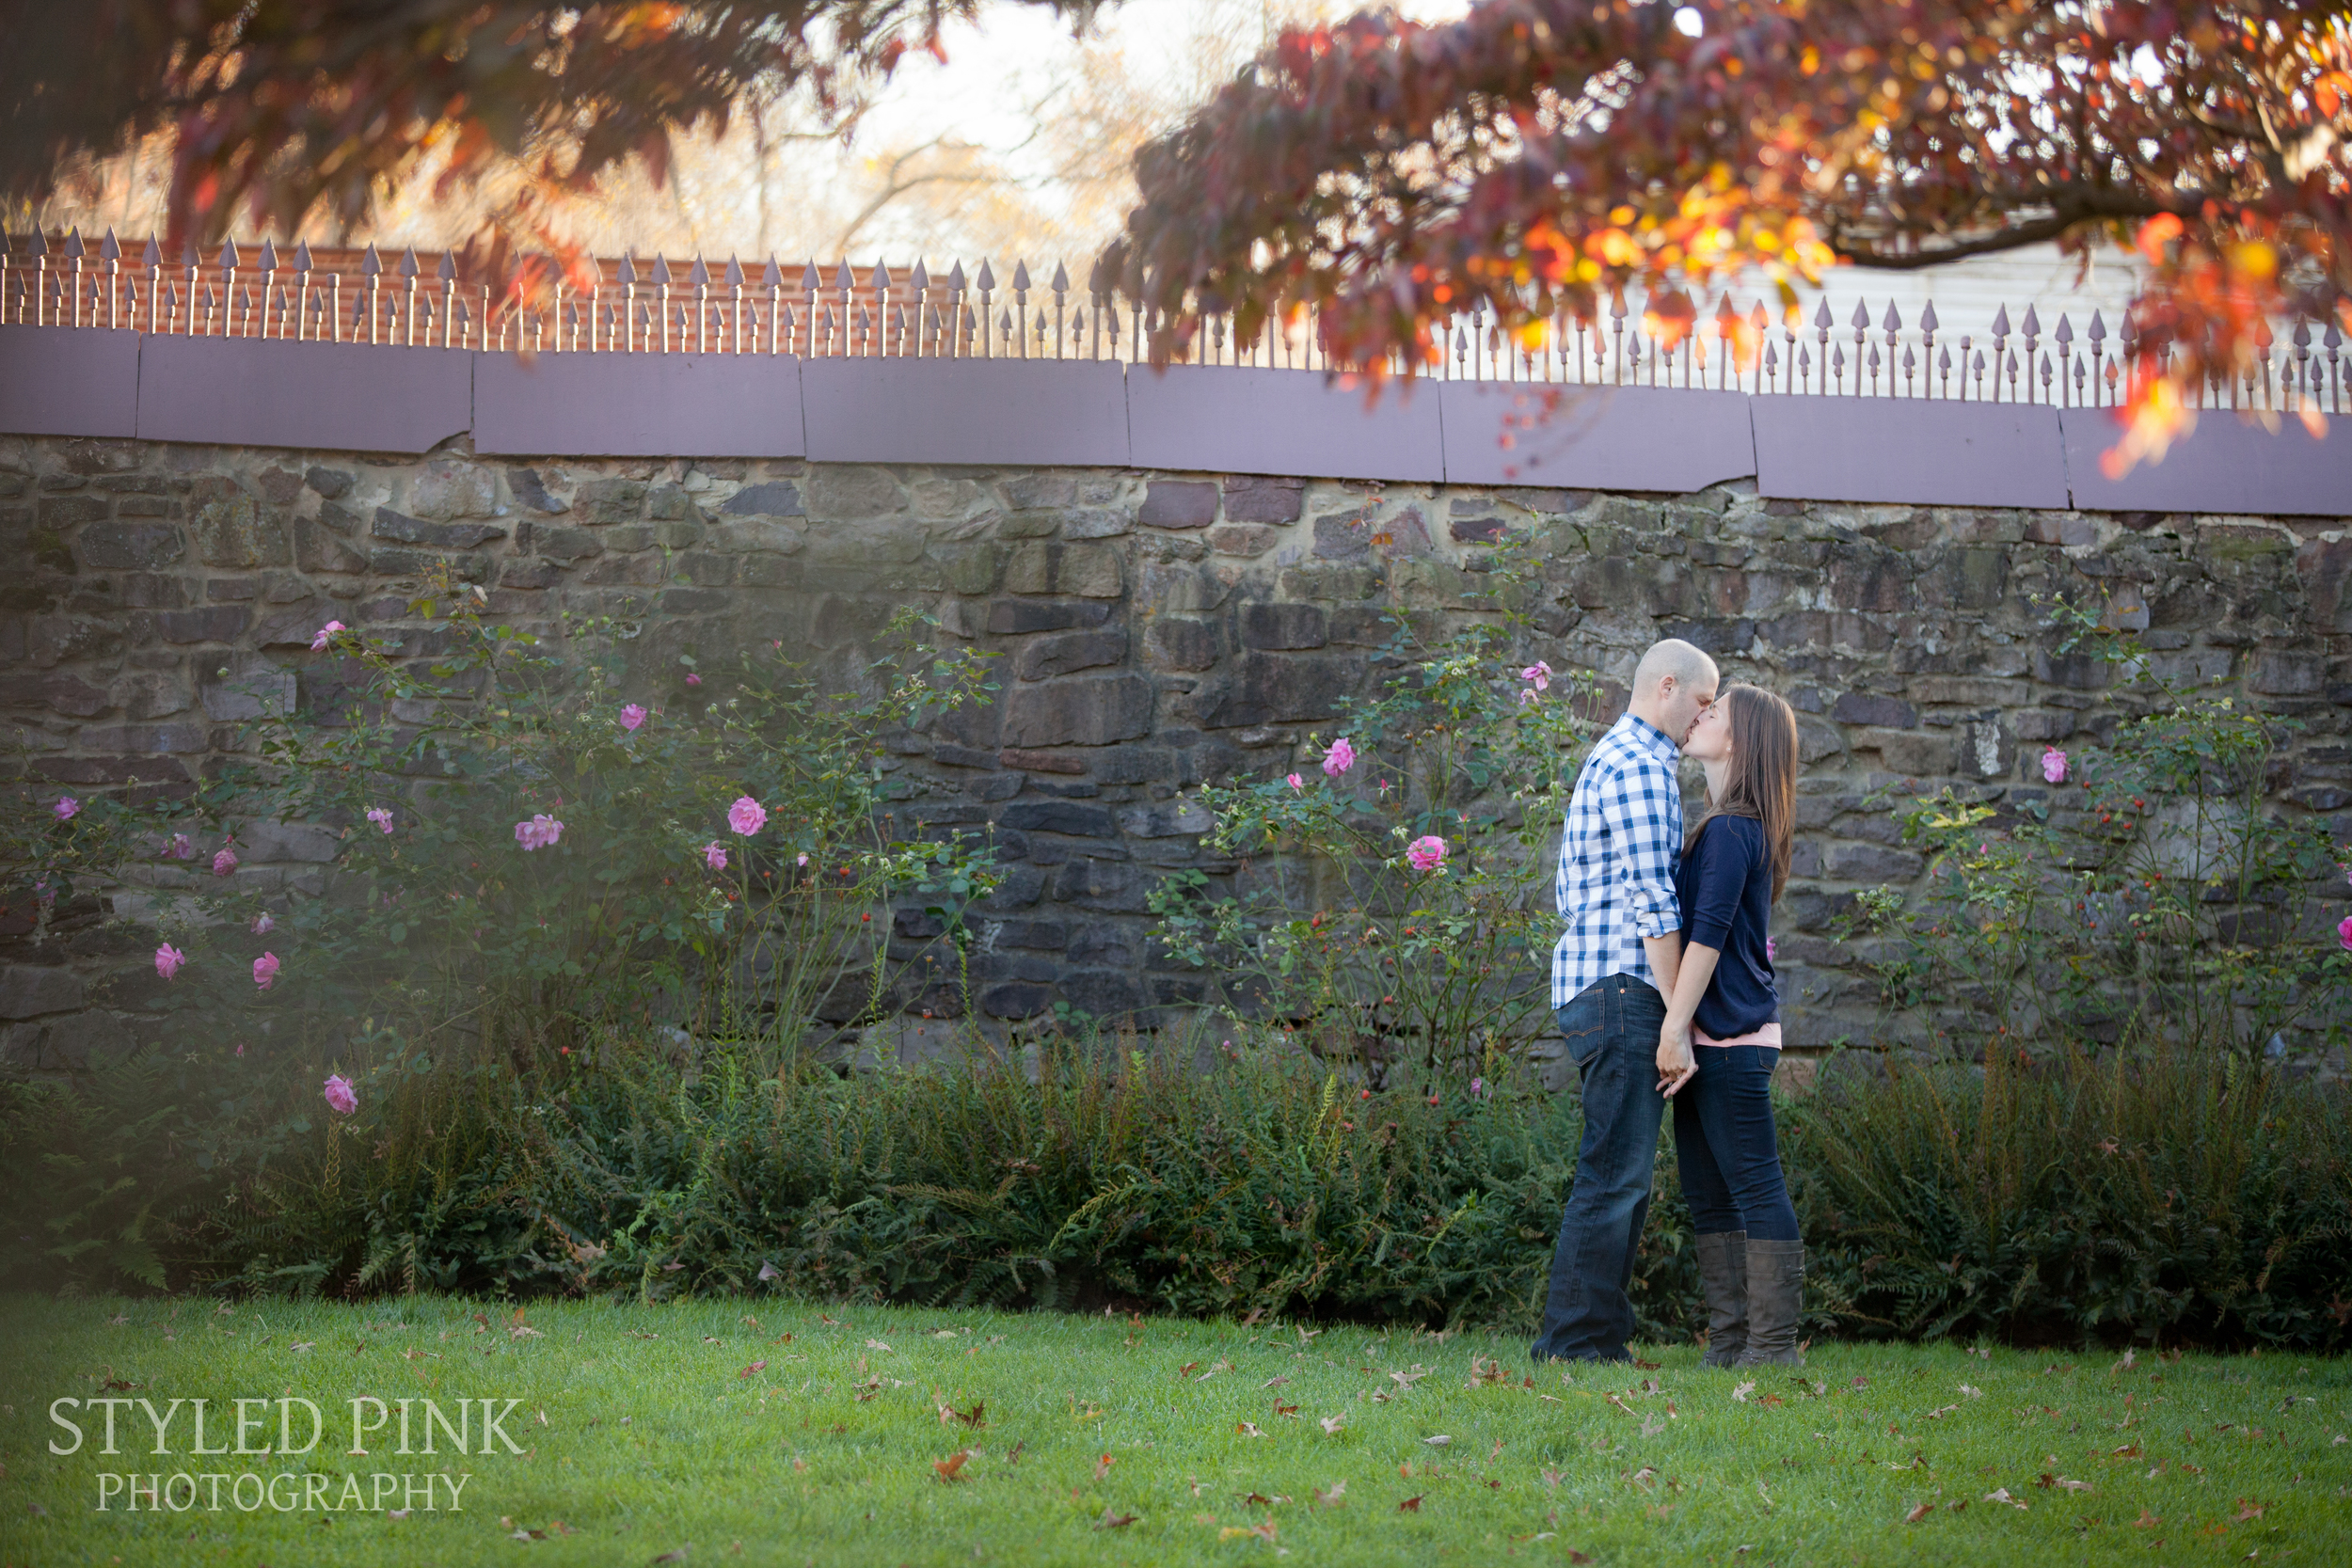 styled-pink-smithville-engagement-6.jpg